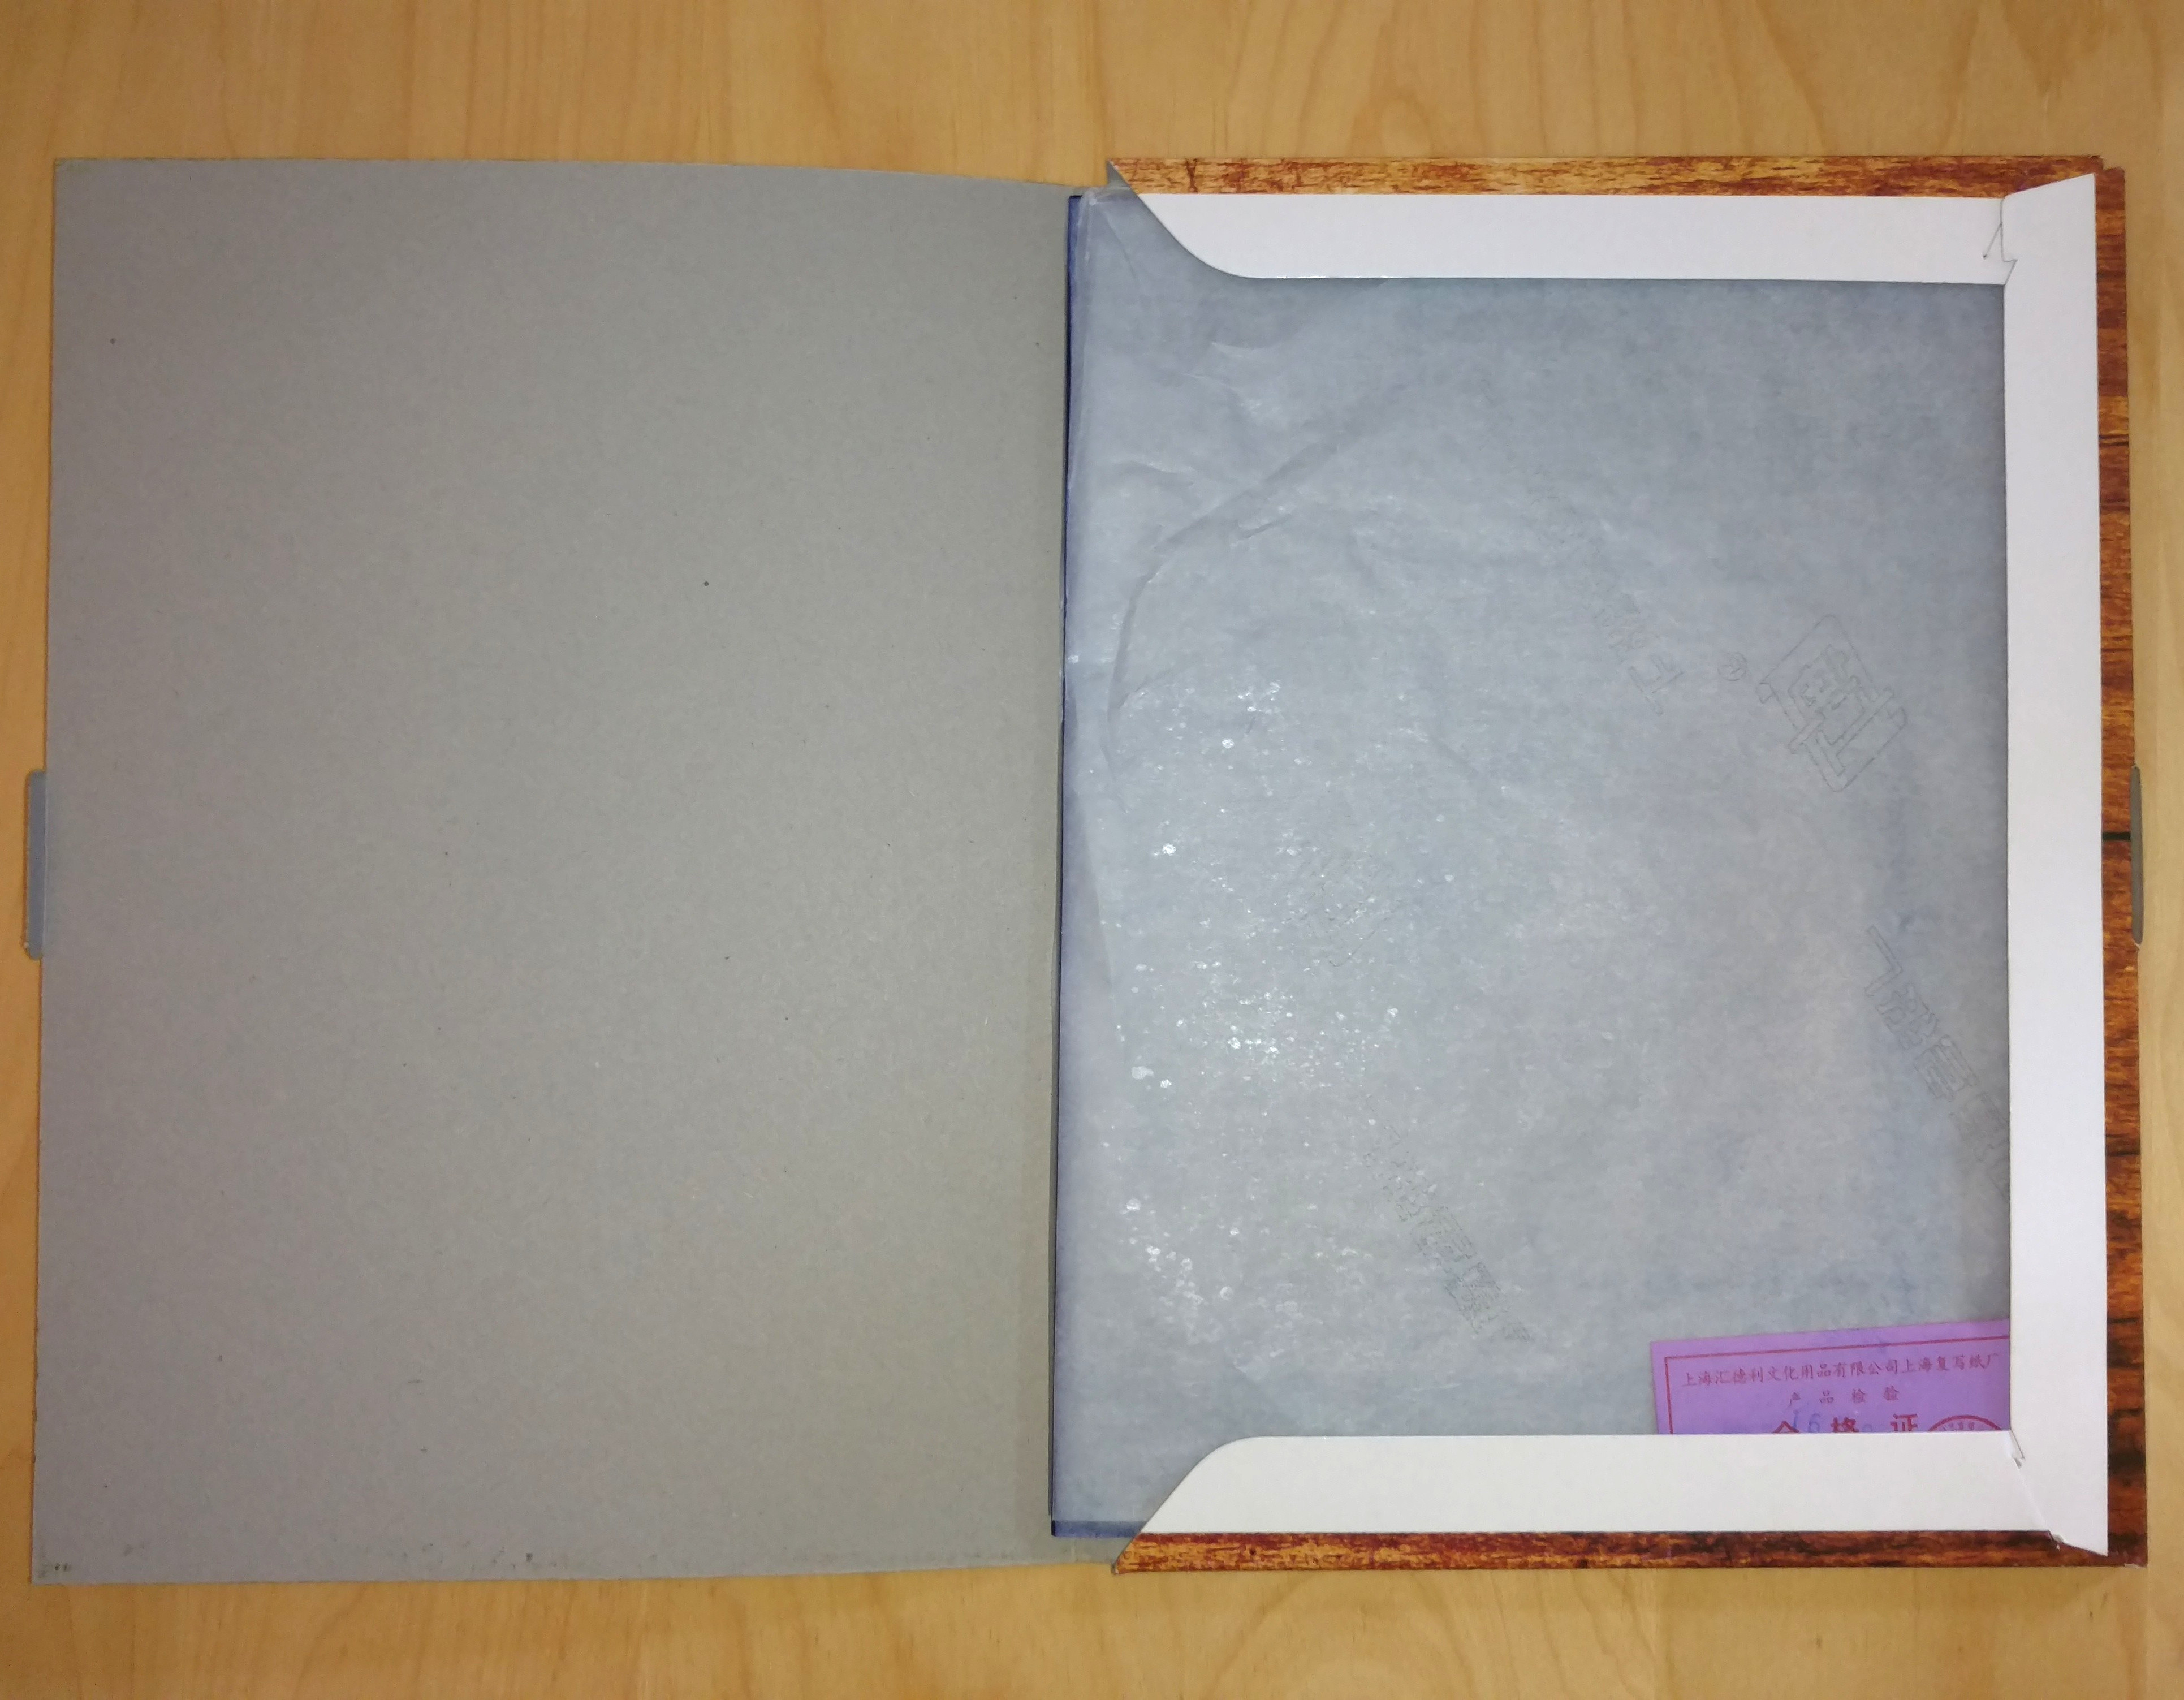 100 Sheets Carbon Transfer Blue Tracing Paper For